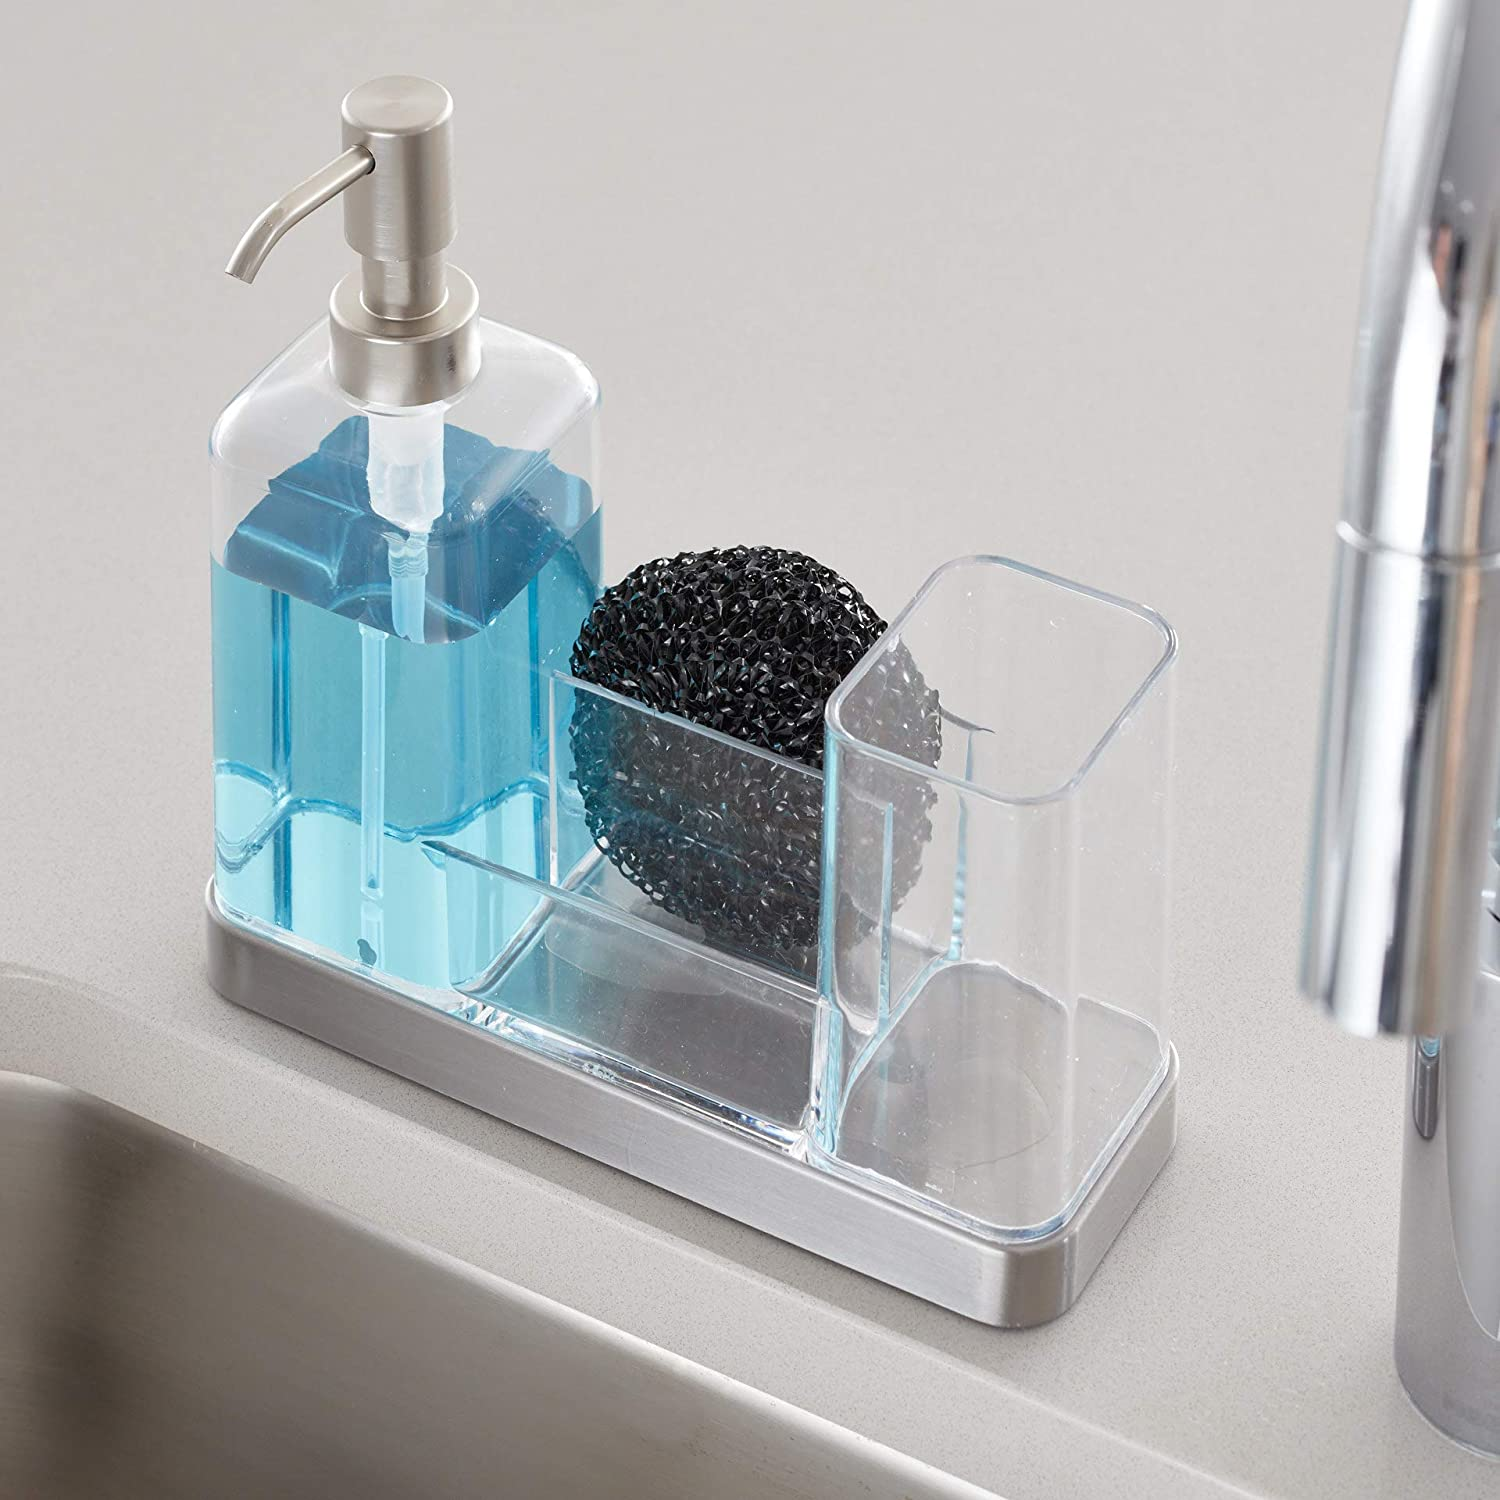 InterDesign Forma Kitchen Caddy with Soap Dispenser Pump /& Scrubby Clear//Brushed Stainless Steel 66880